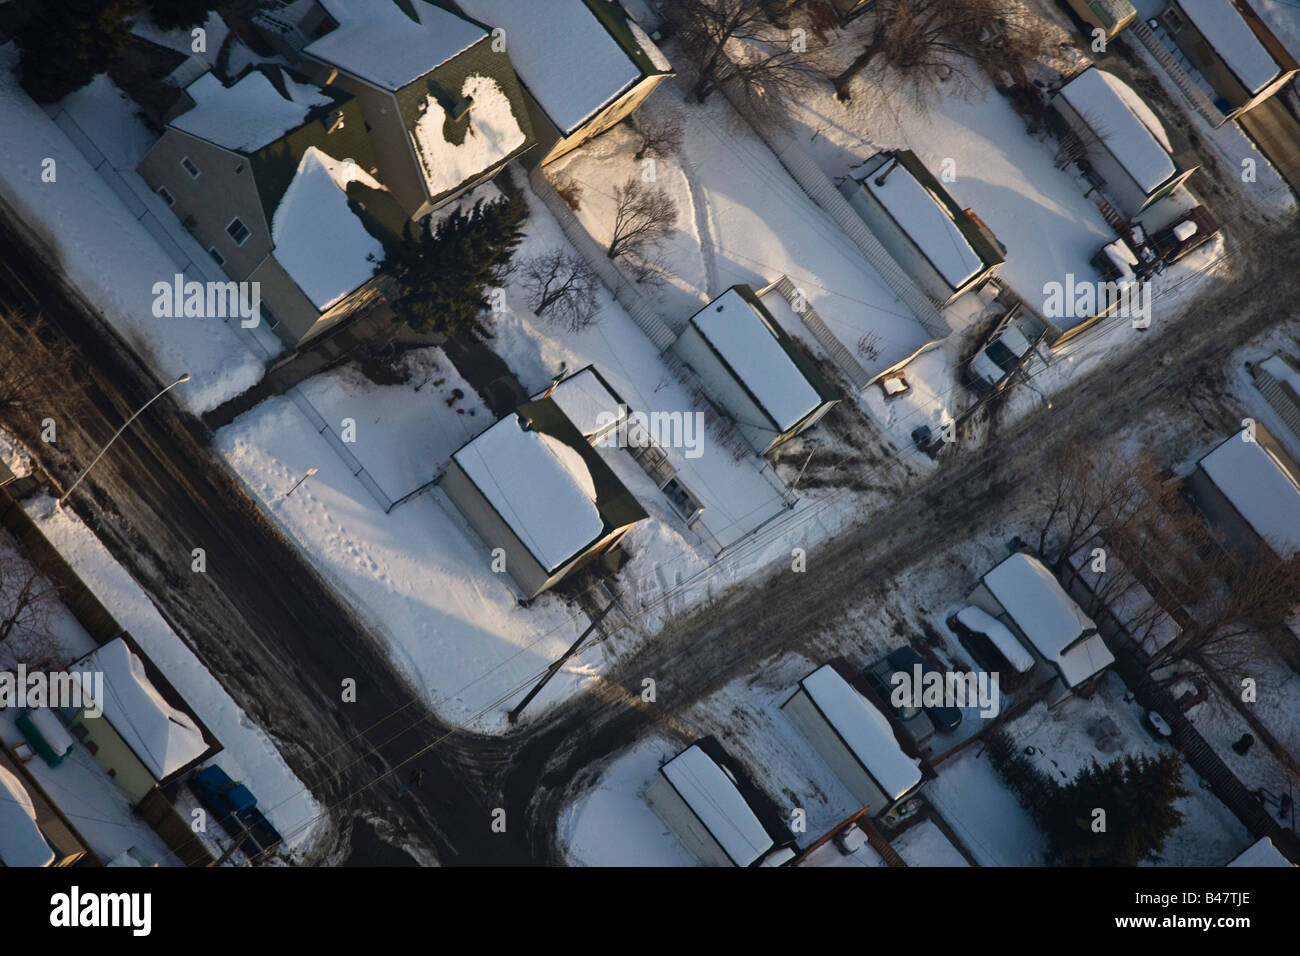 Snow covered rooftops - Stock Image